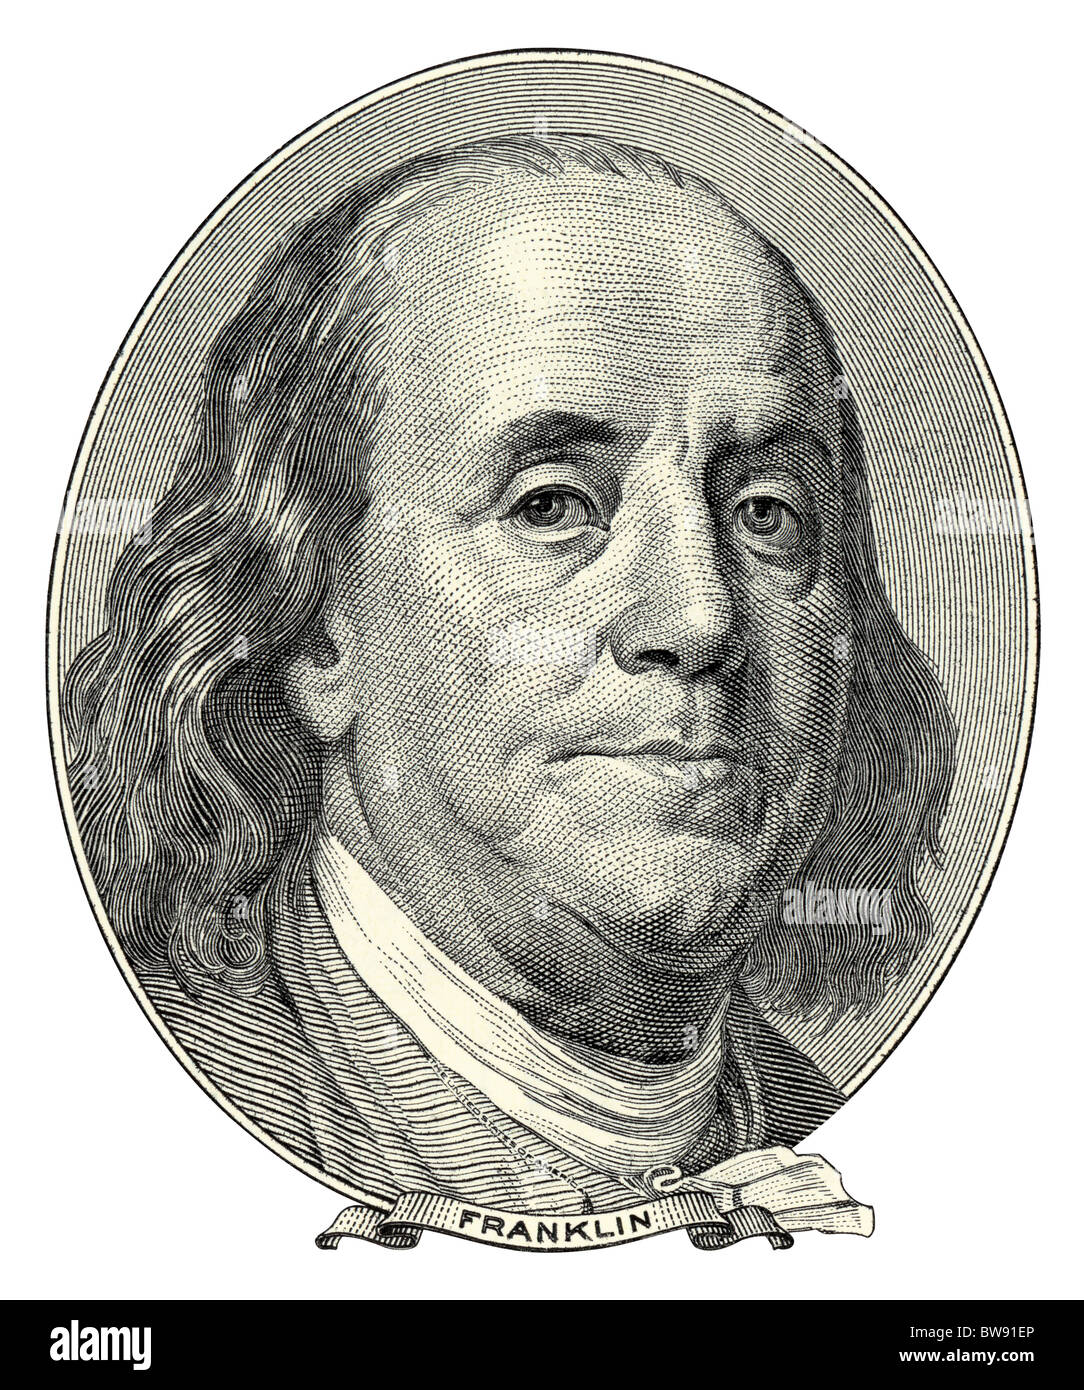 Portrait Of Benjamin Franklin As He Looks On One Hundred